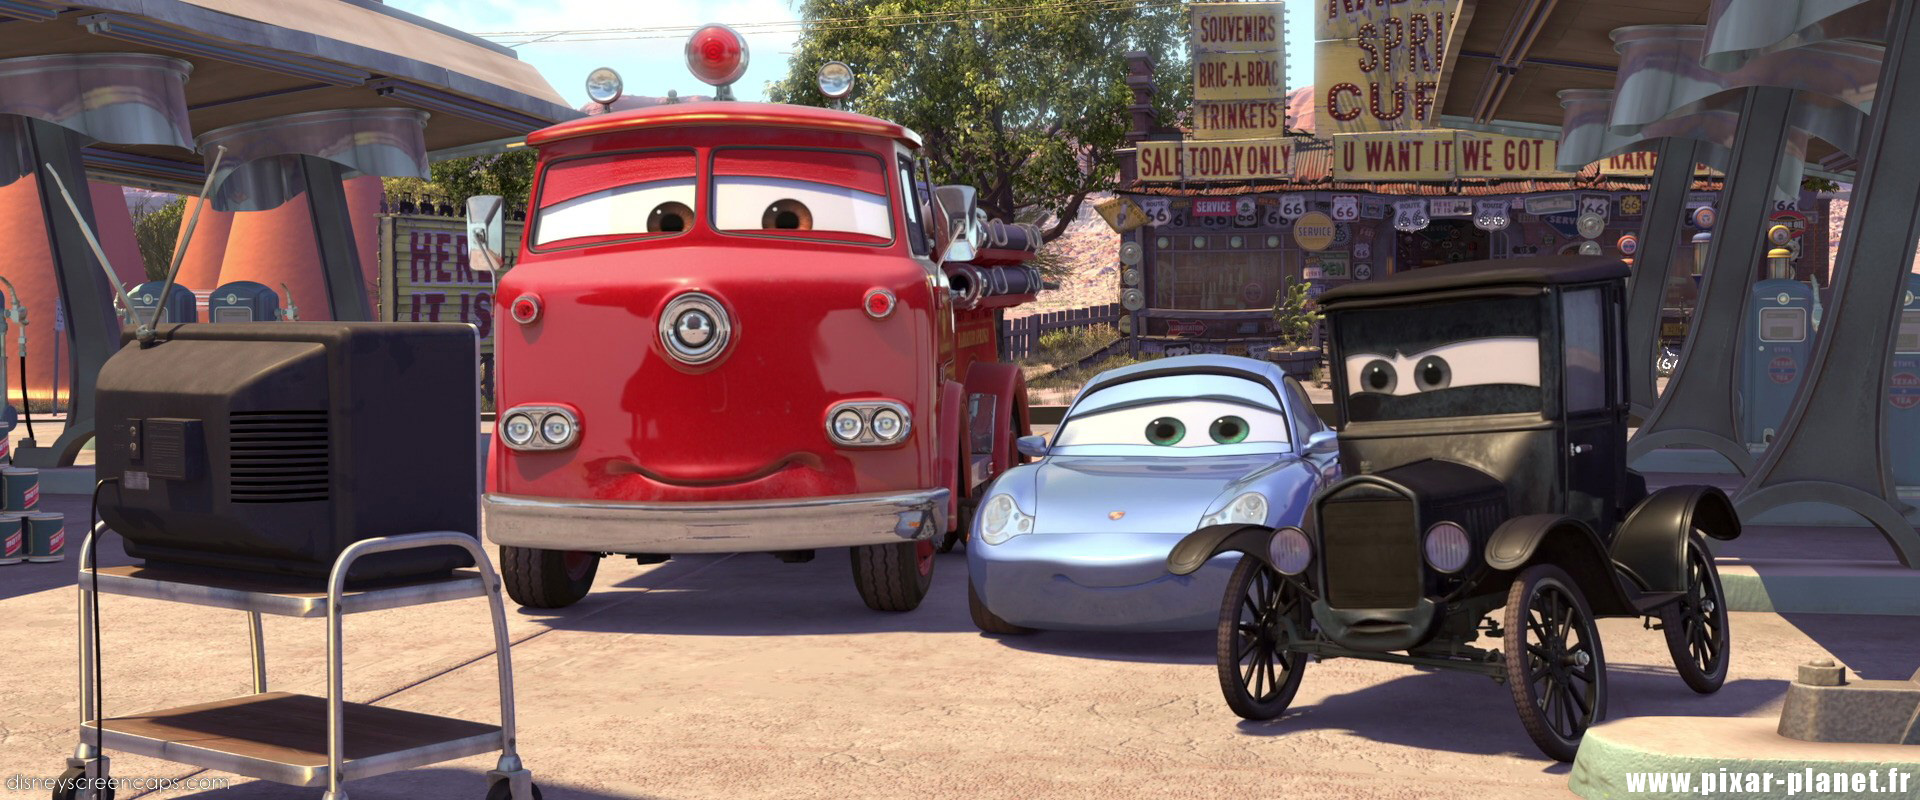 Pixar Planet Disney cars